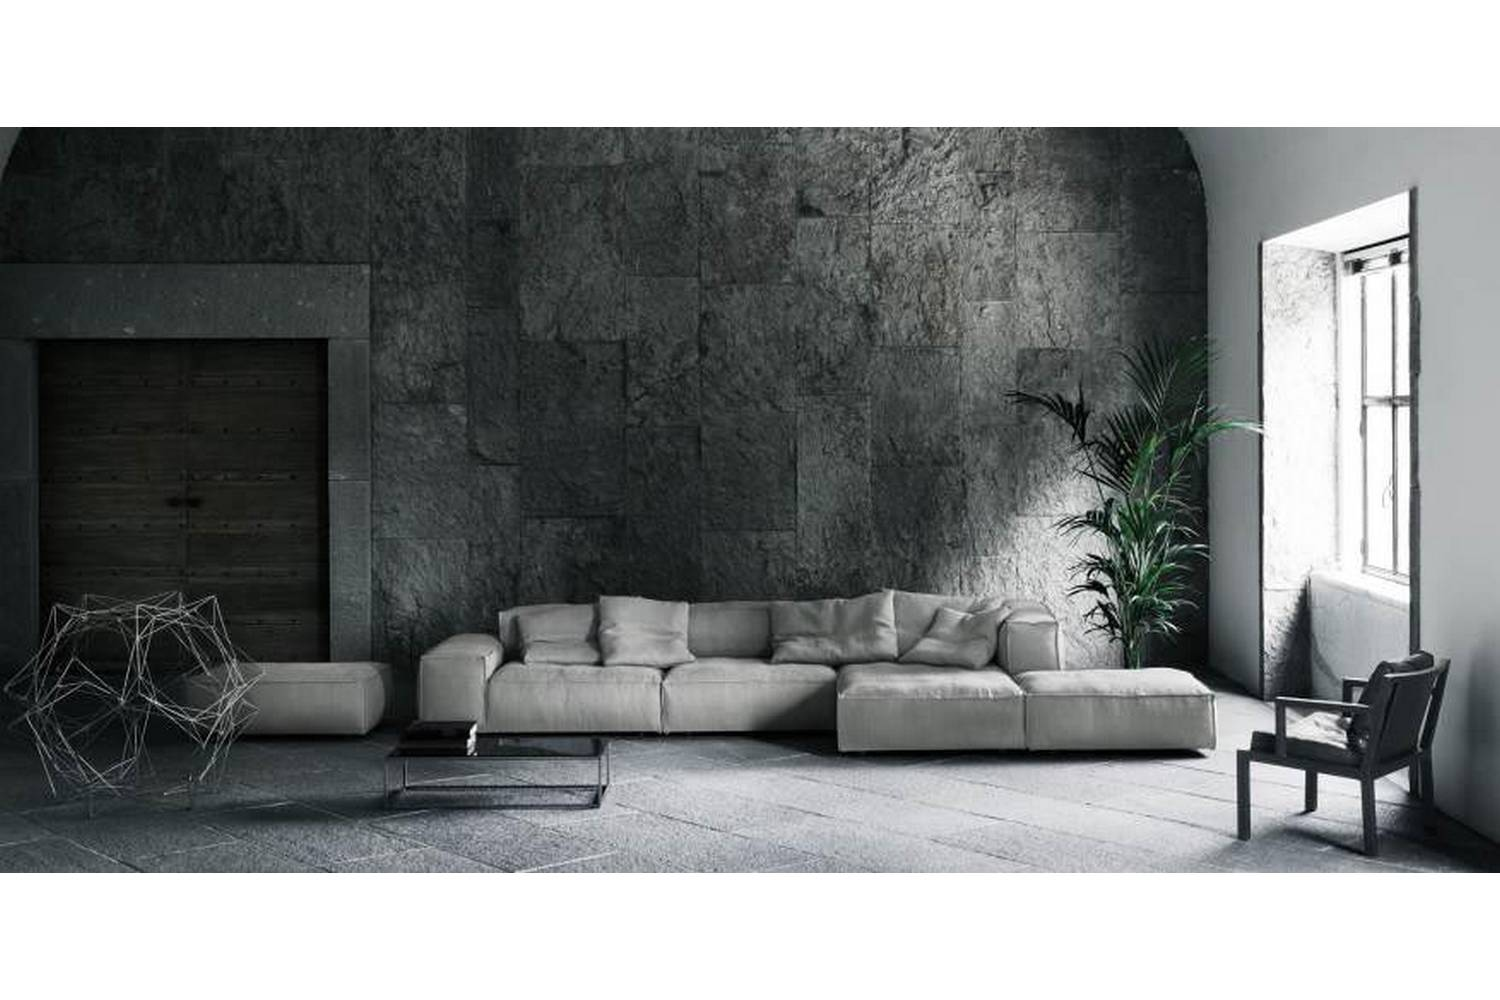 Living Divani The Wall Sofa Neowall Sofa By Piero Lissoni For Living Divani Space Furniture